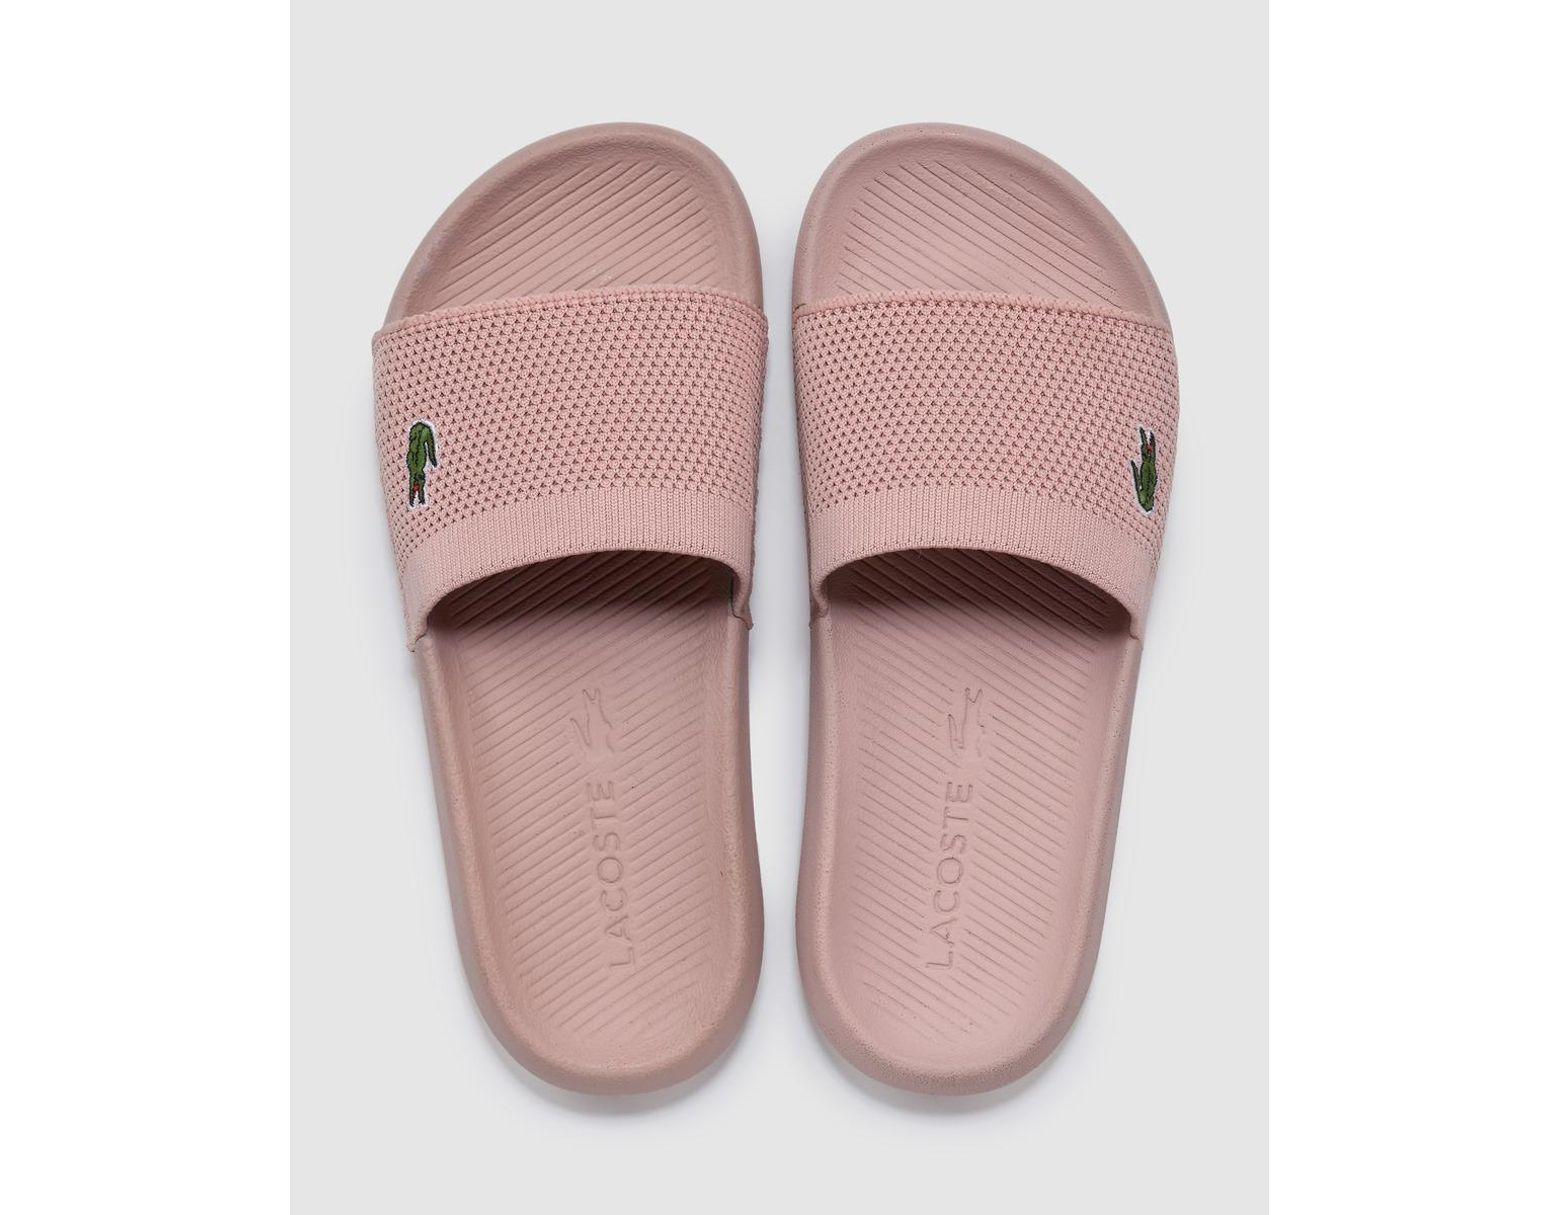 Pink Fabric Pool Mesh Save 38Lyst In Lacoste Sandals OZiTwXulPk